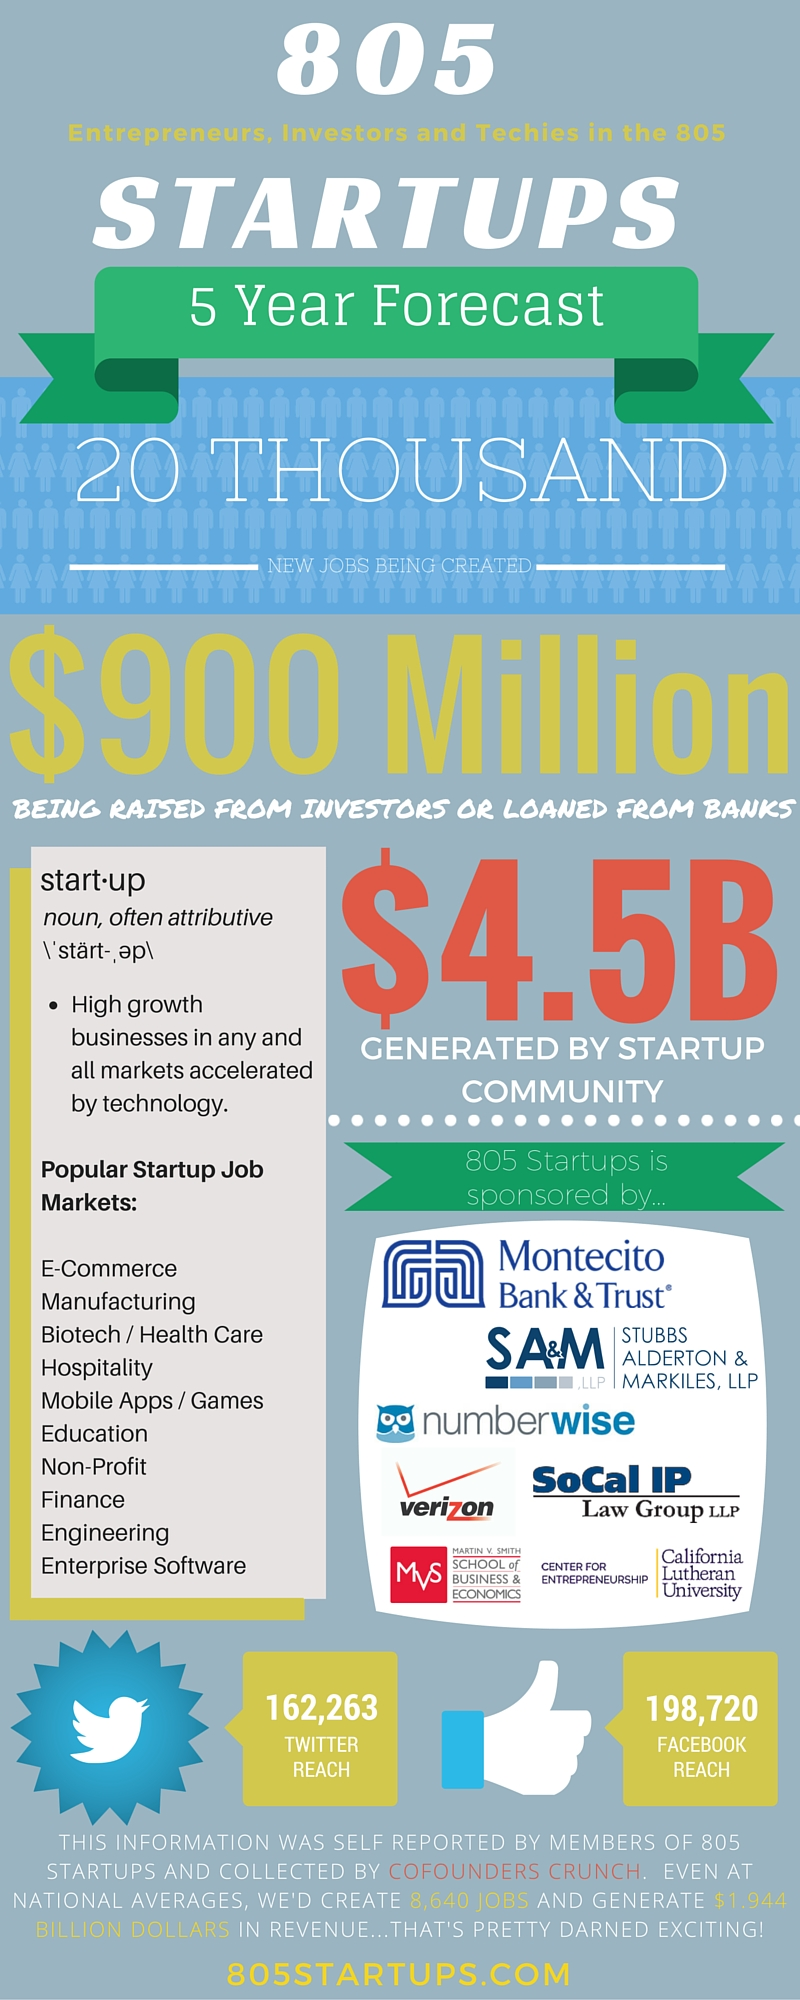 805 Startups Infographic